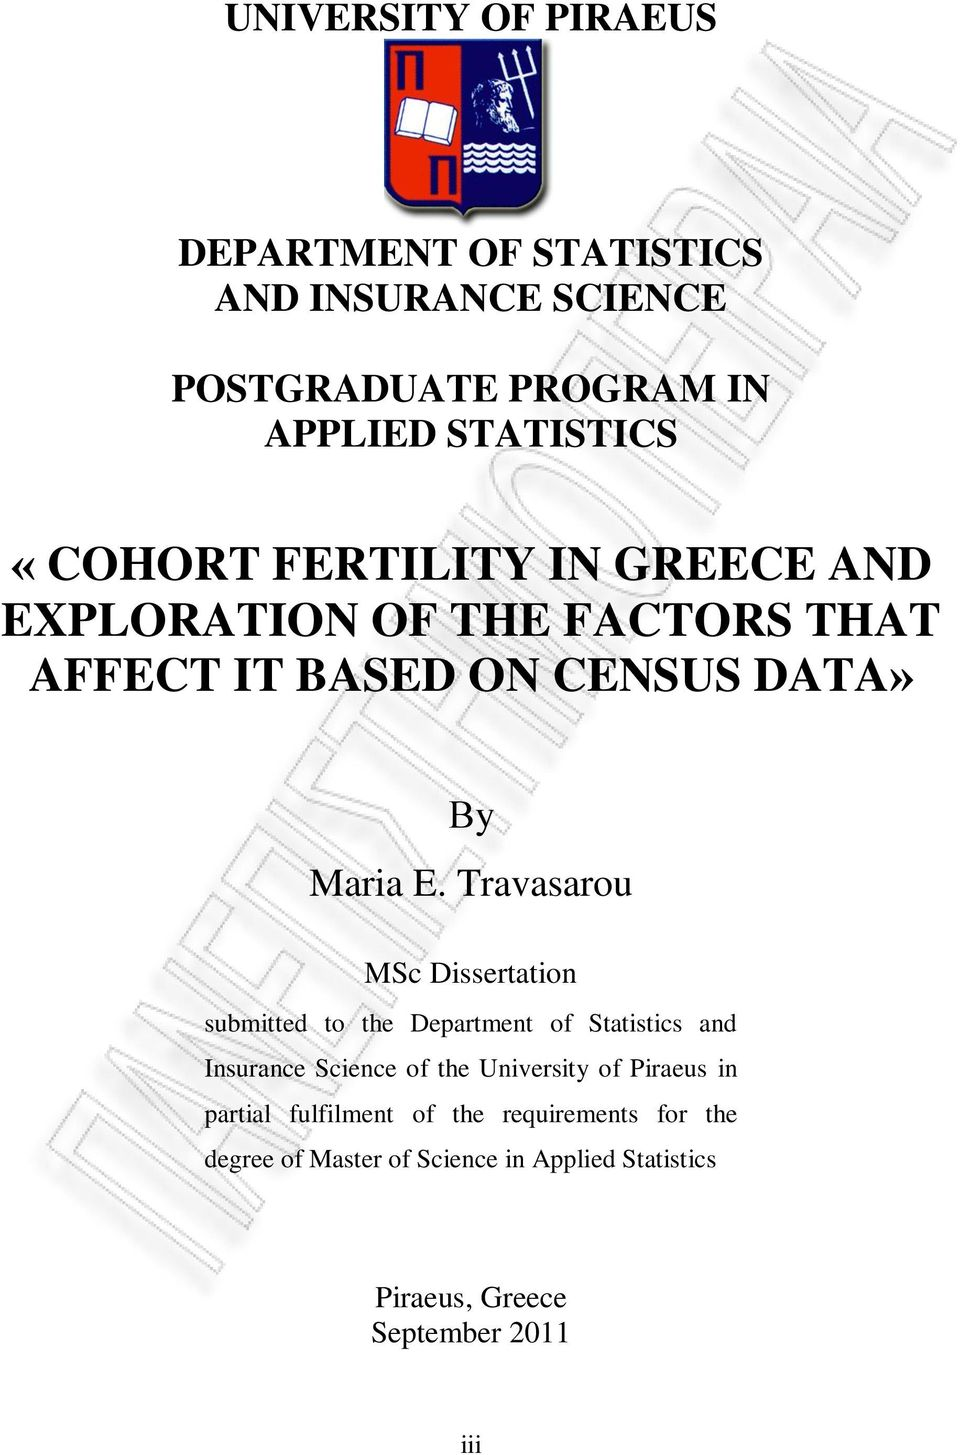 Travasarou MSc Dissertation submitted to the Department of Statistics and Insurance Science of the University of